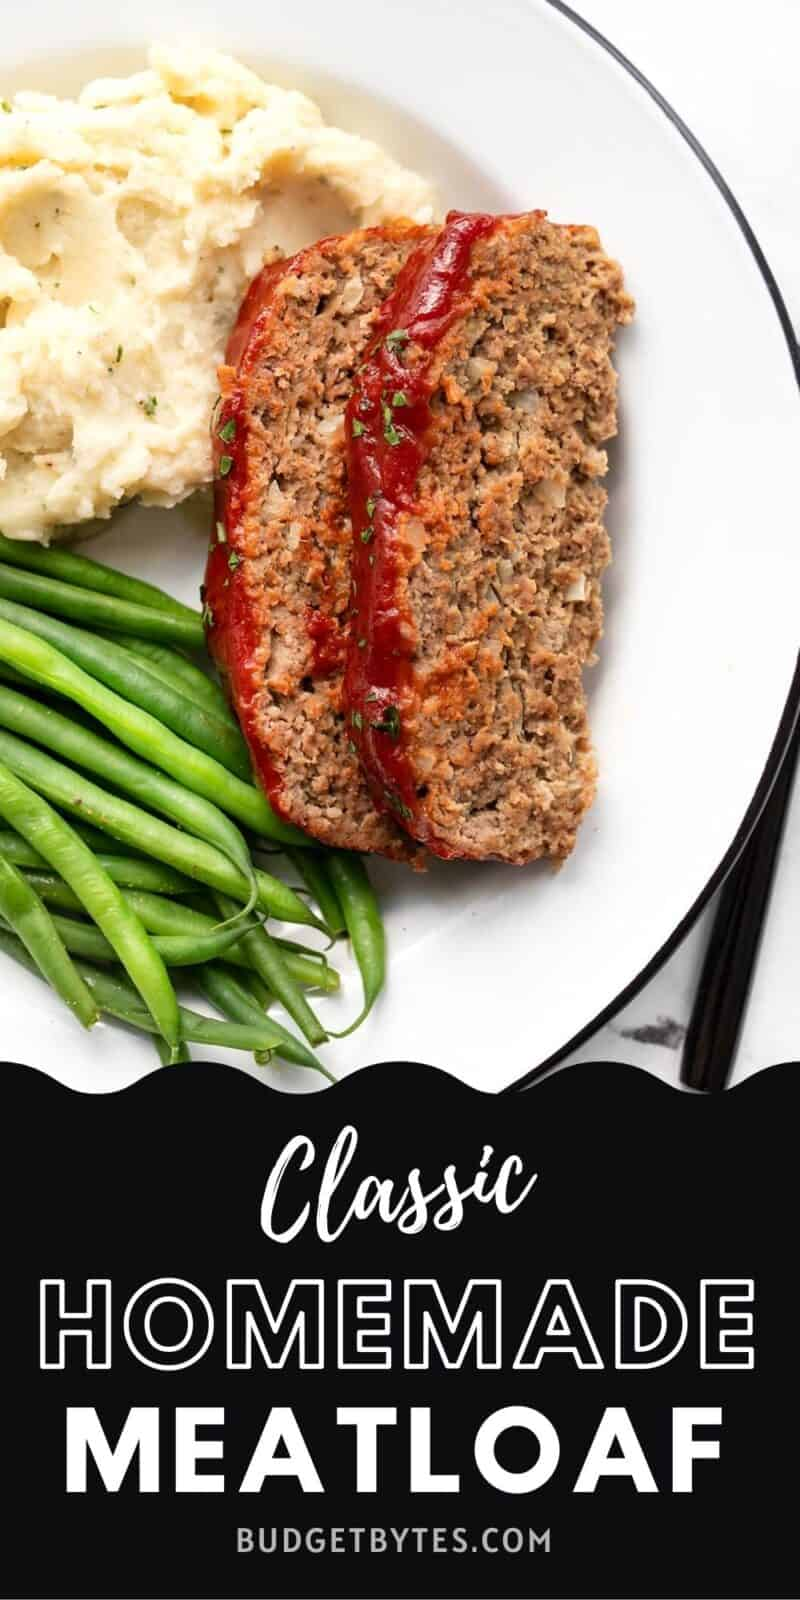 Two slices of meatloaf on a plate with green beans and mashed potatoes, title text at the bottom.